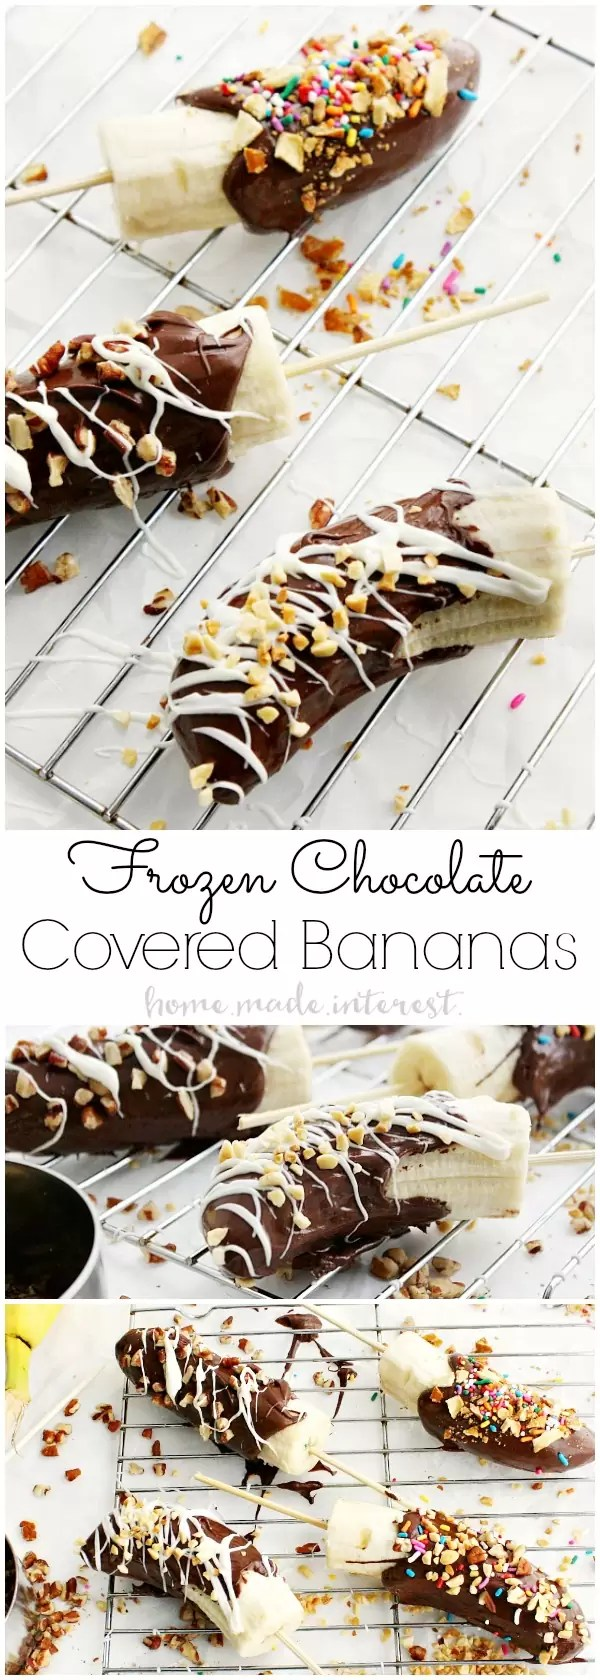 Frozen Chocolate Covered Bananas were always one of my favorite after school snacks and now my kids love this easy snack just as much as I do! This Frozen Chocolate Covered Bananas recipe is easy to make and your kids can have fun sprinkling them with their favorite toppings. Then freeze them for a frozen banana snack!